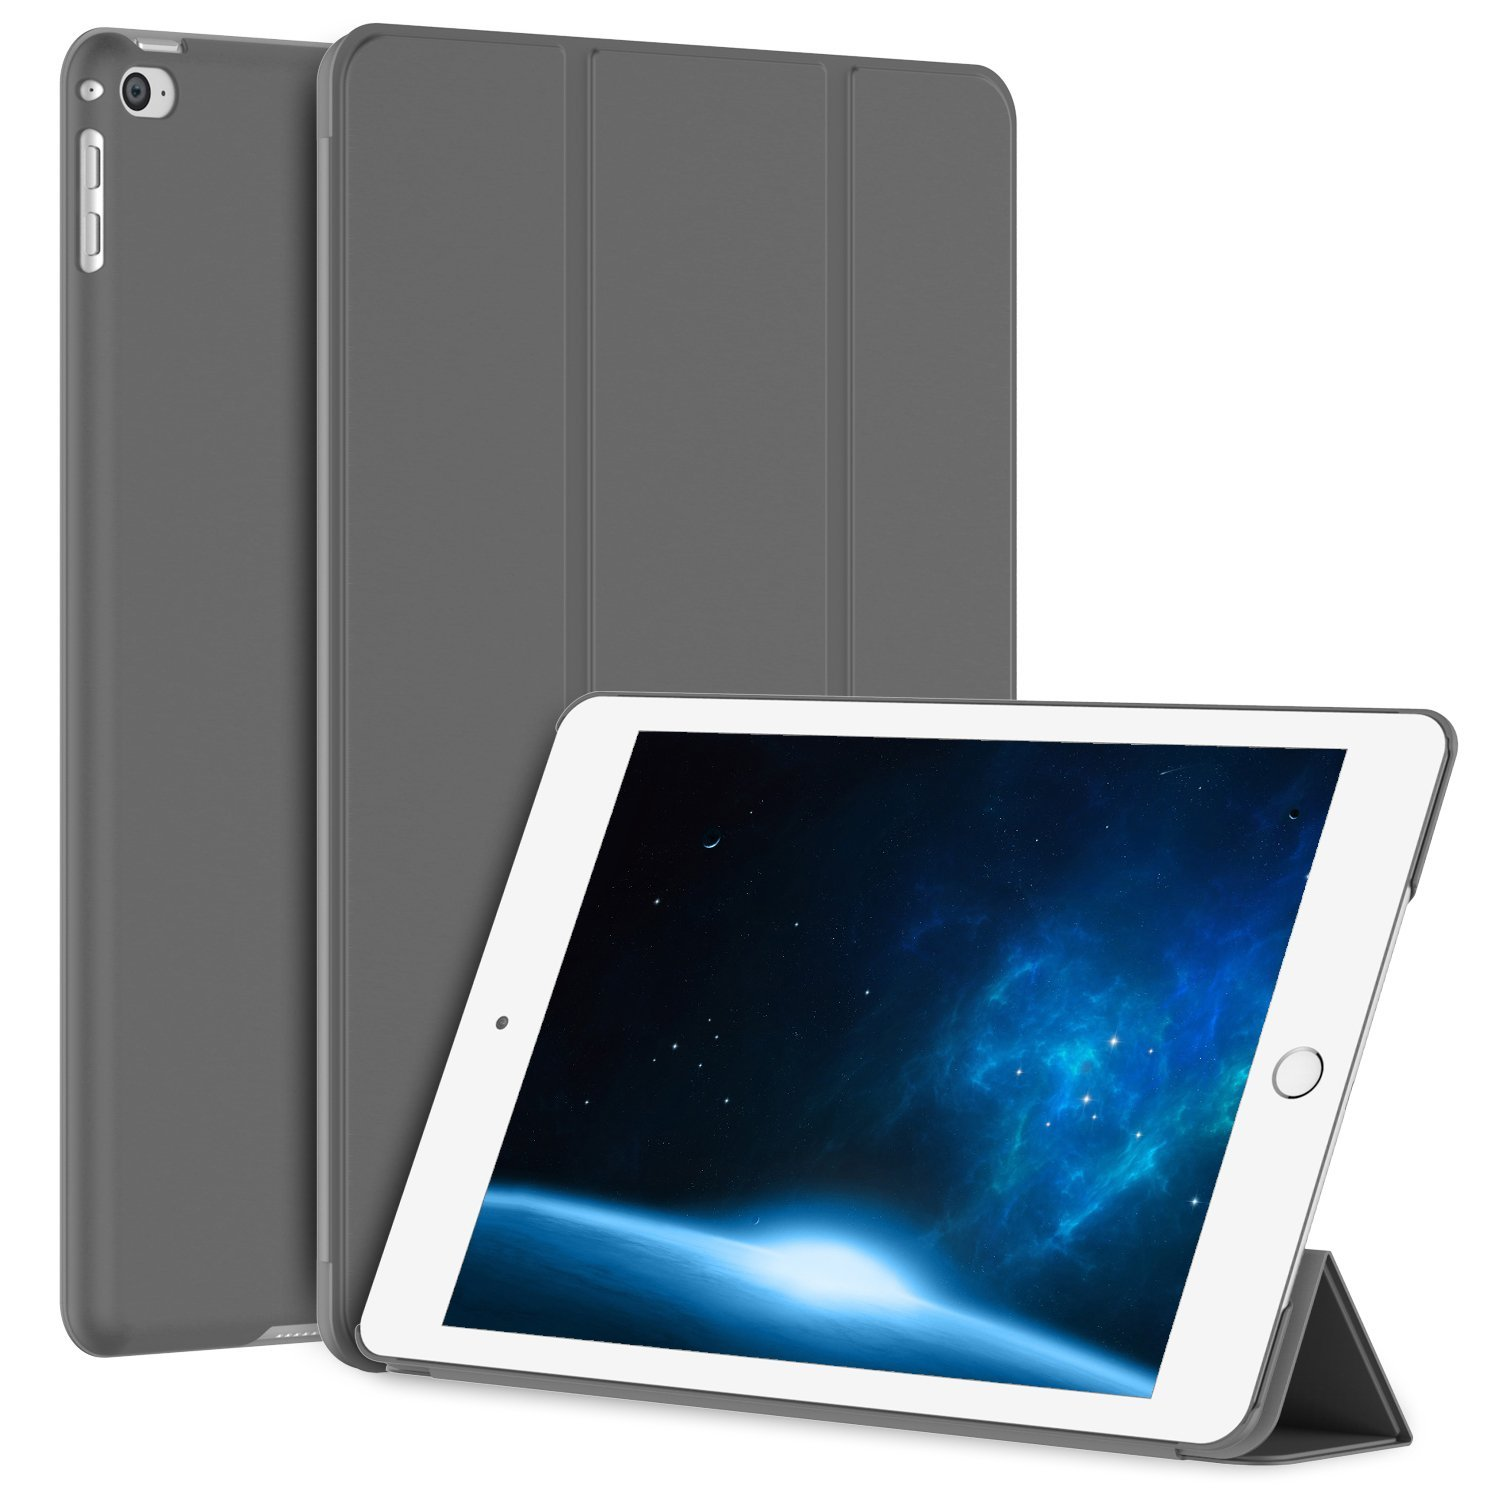 iPad Air 2 Case, SuprJETech® iPad Air 2 Slim-Fit Smart Case Cover for Apple iPad Air 2 (iPad 6) 2014 Model Ultra Slim Lightweight Stand with Smart Cover Auto Wake/Sleep (Black)